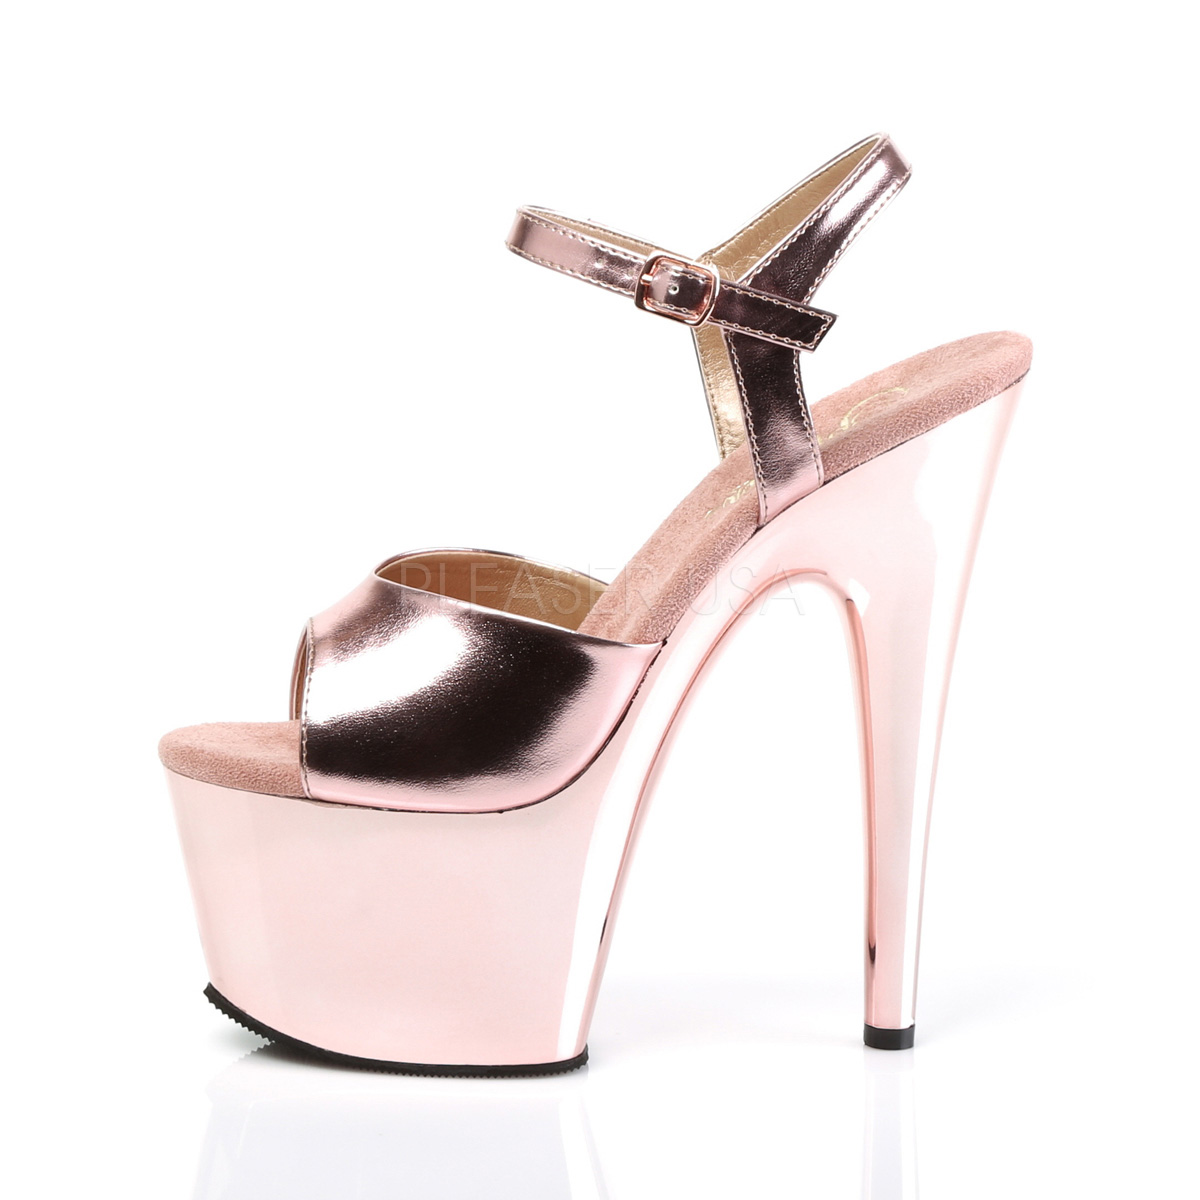 b970bbb5c6 Platform High Heels ADORE-709 - Rose, Pleaser